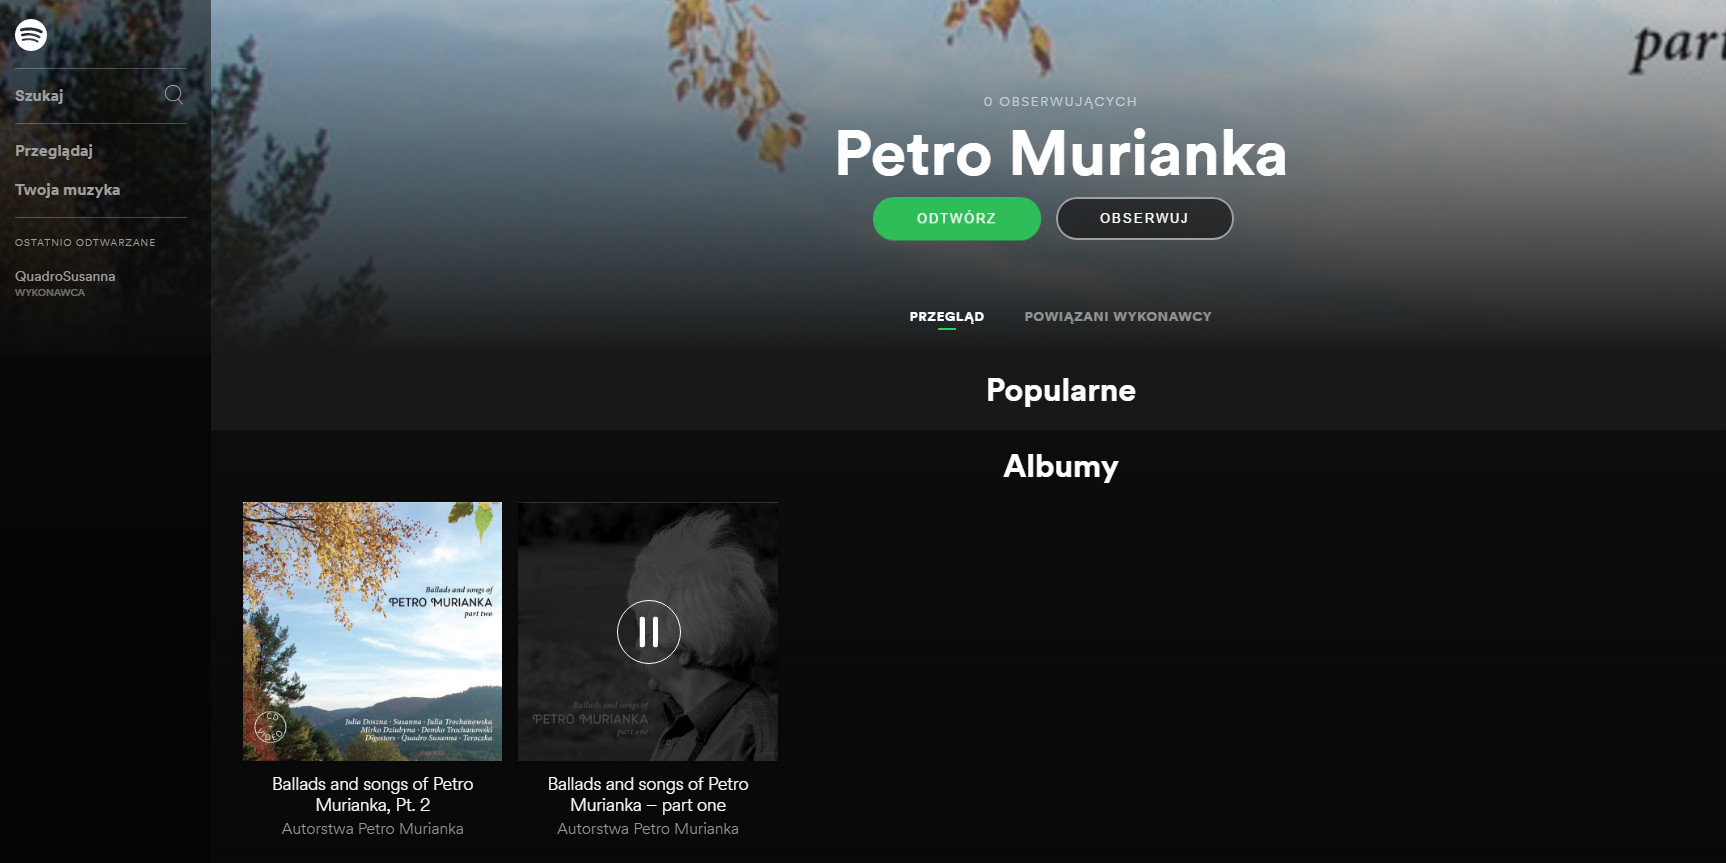 Petro Murianka on Spotify and iTunes